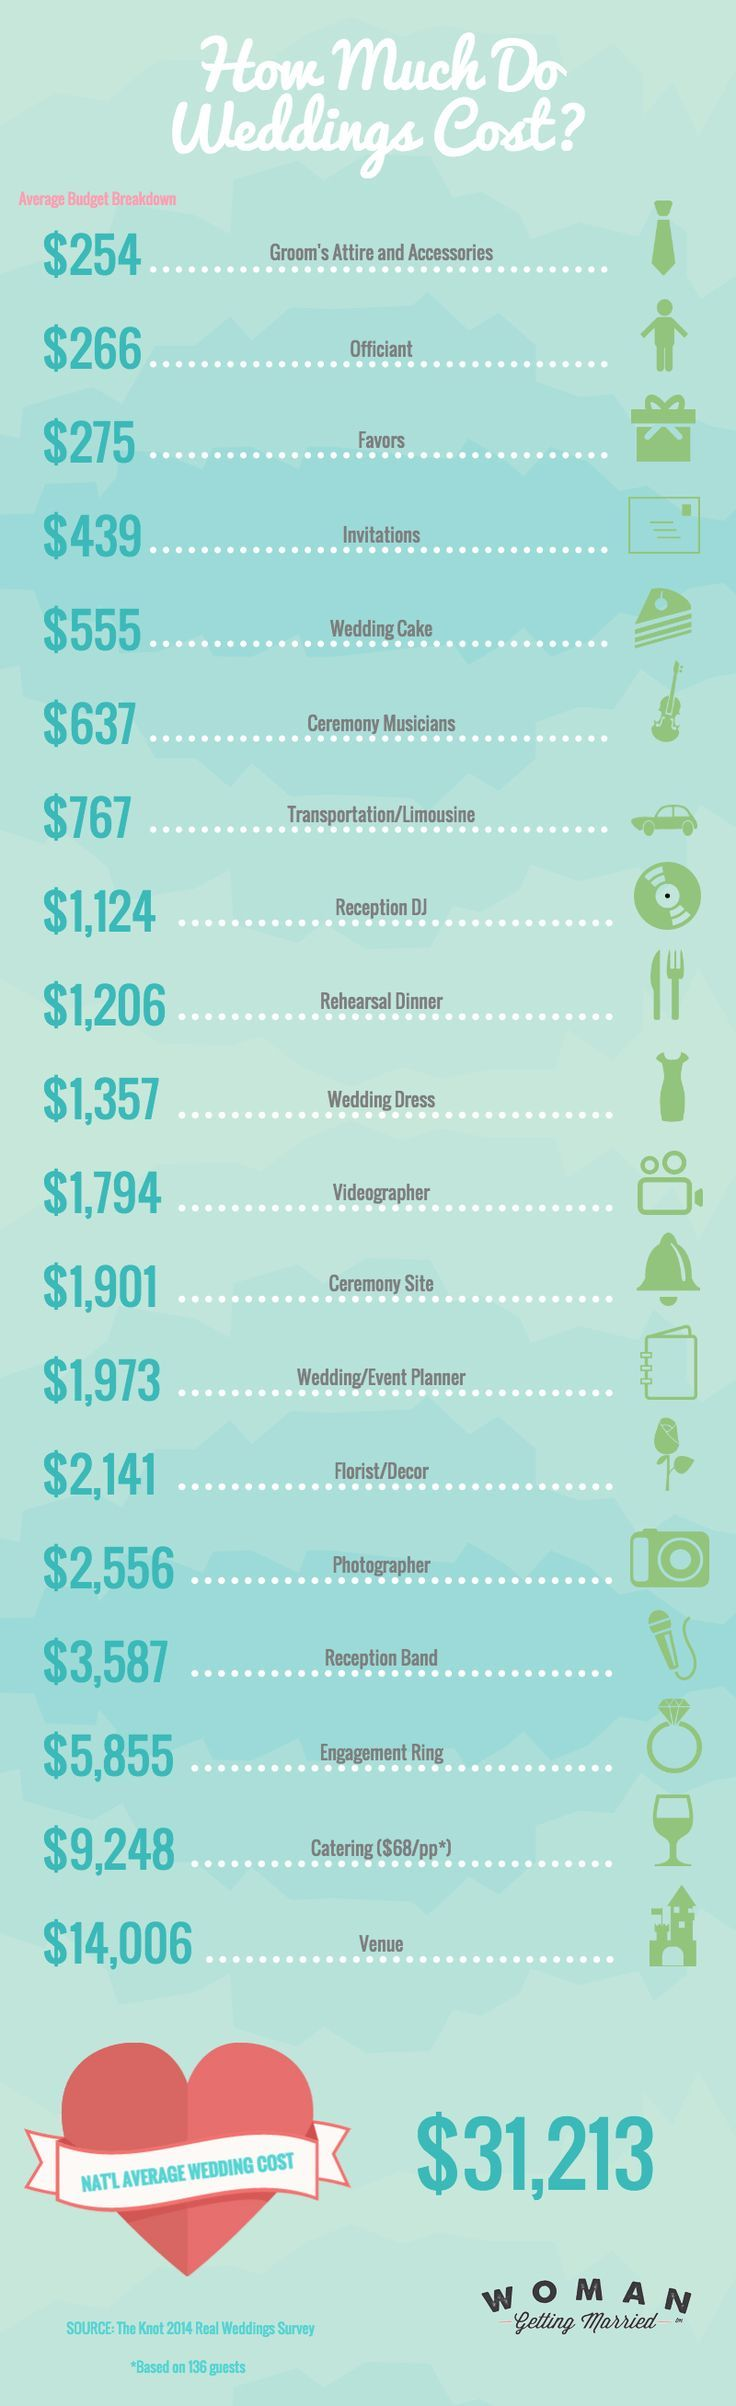 67 best wedding budget images on pinterest budget for How much do weddings cost on average